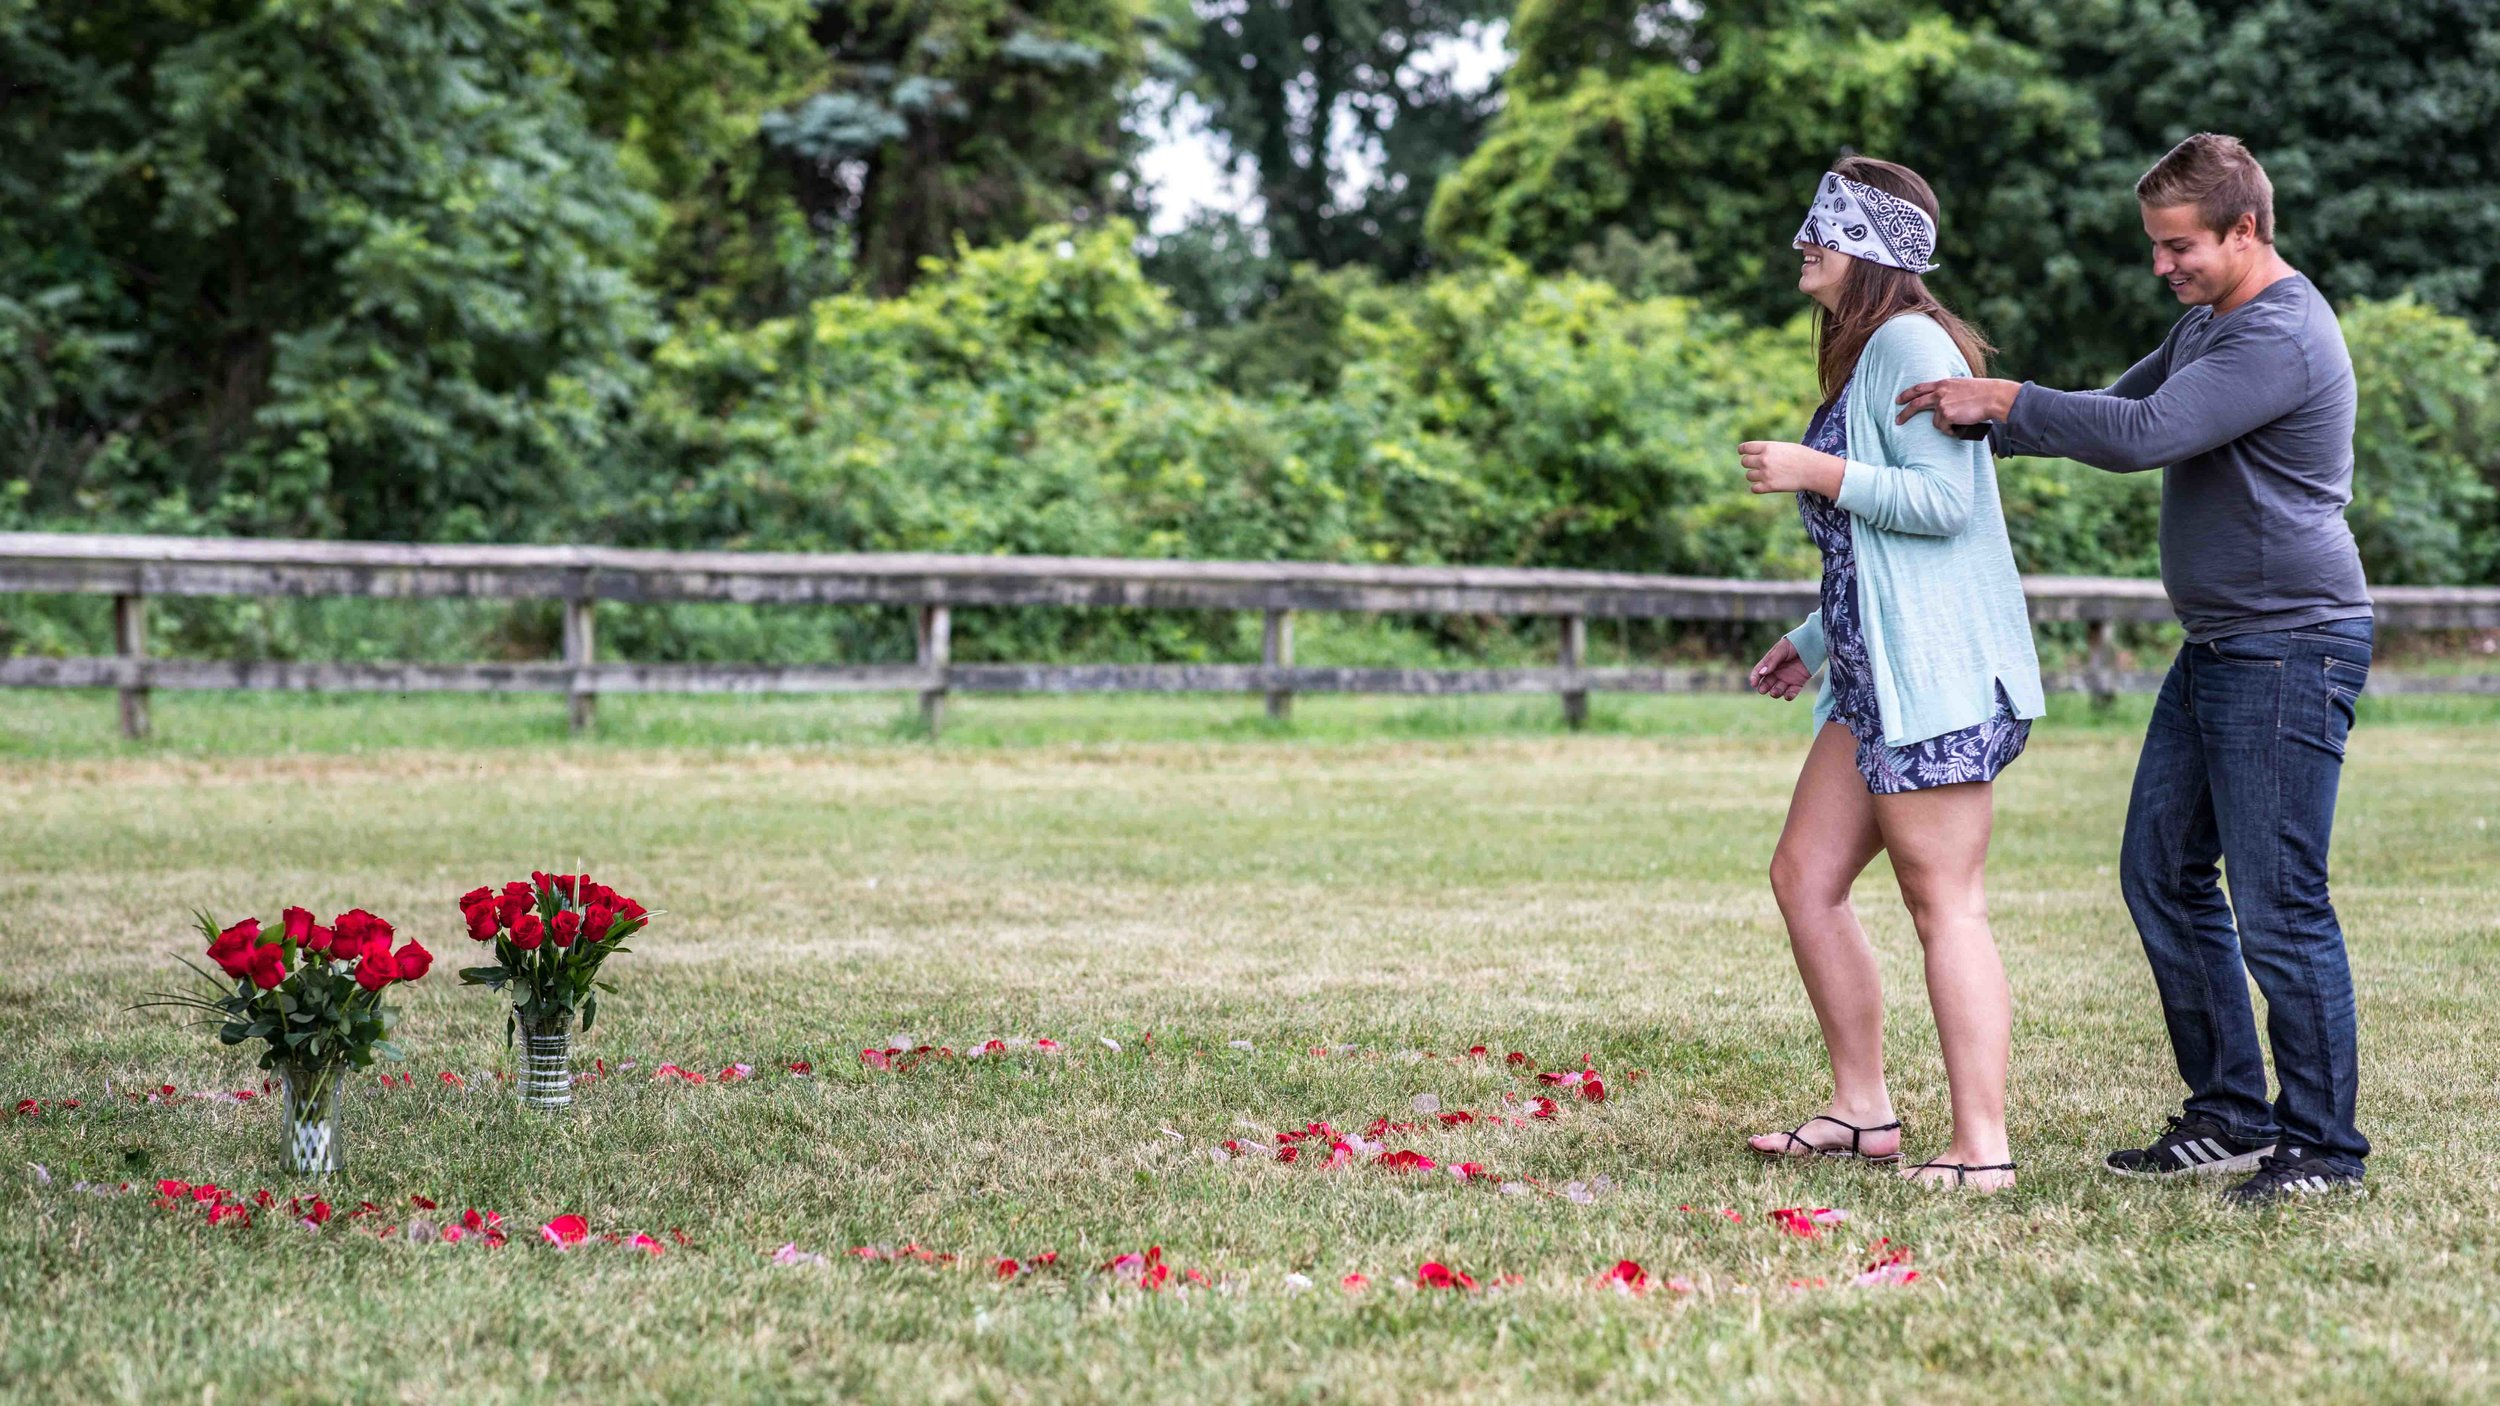 The boyfriend positions his blindfolded girlfriend in place at the top of a heart made of flower pedals